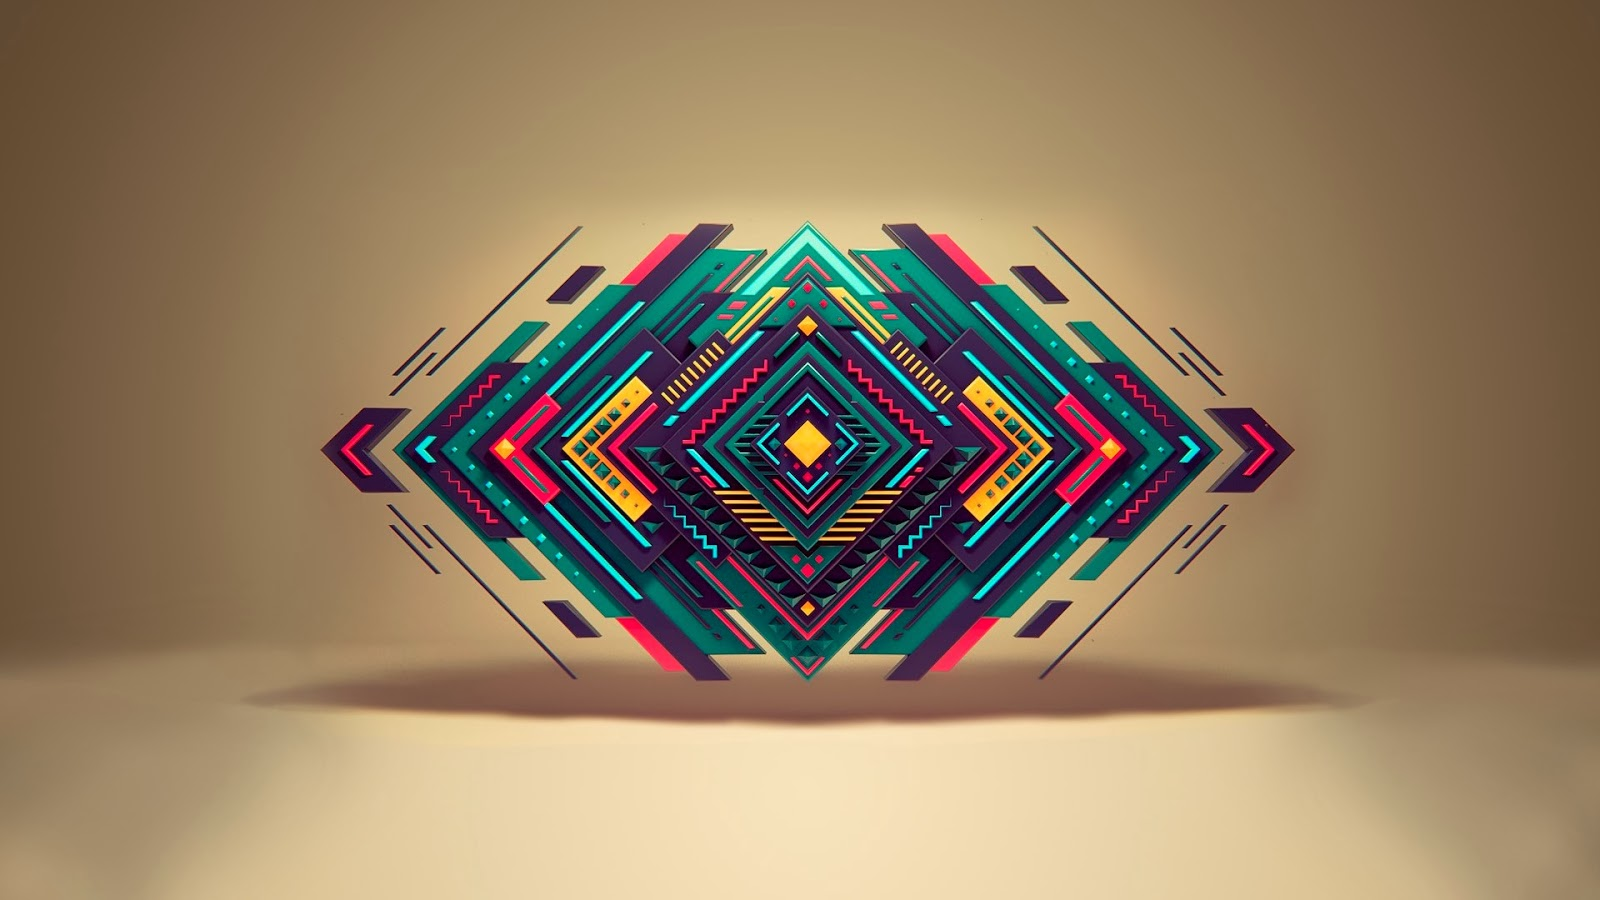 wallpaper 1600x900 by marxdesign - photo #20